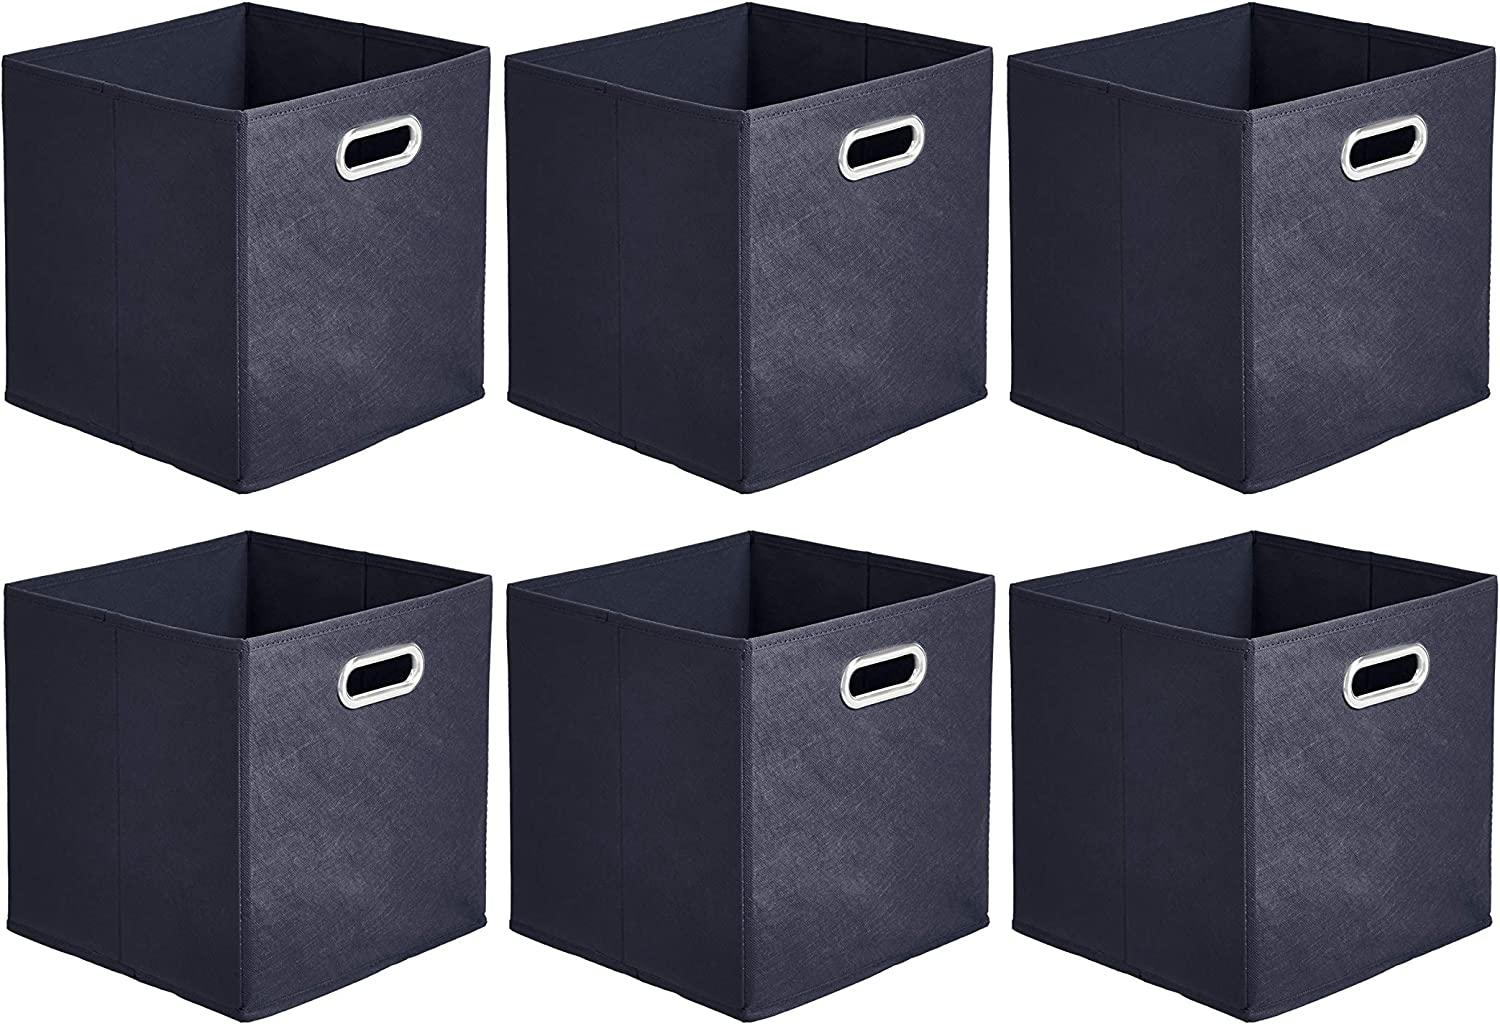 AmazonBasics Collapsible Fabric Storage Cubes with Oval Grommets - 6-Pack, Navy